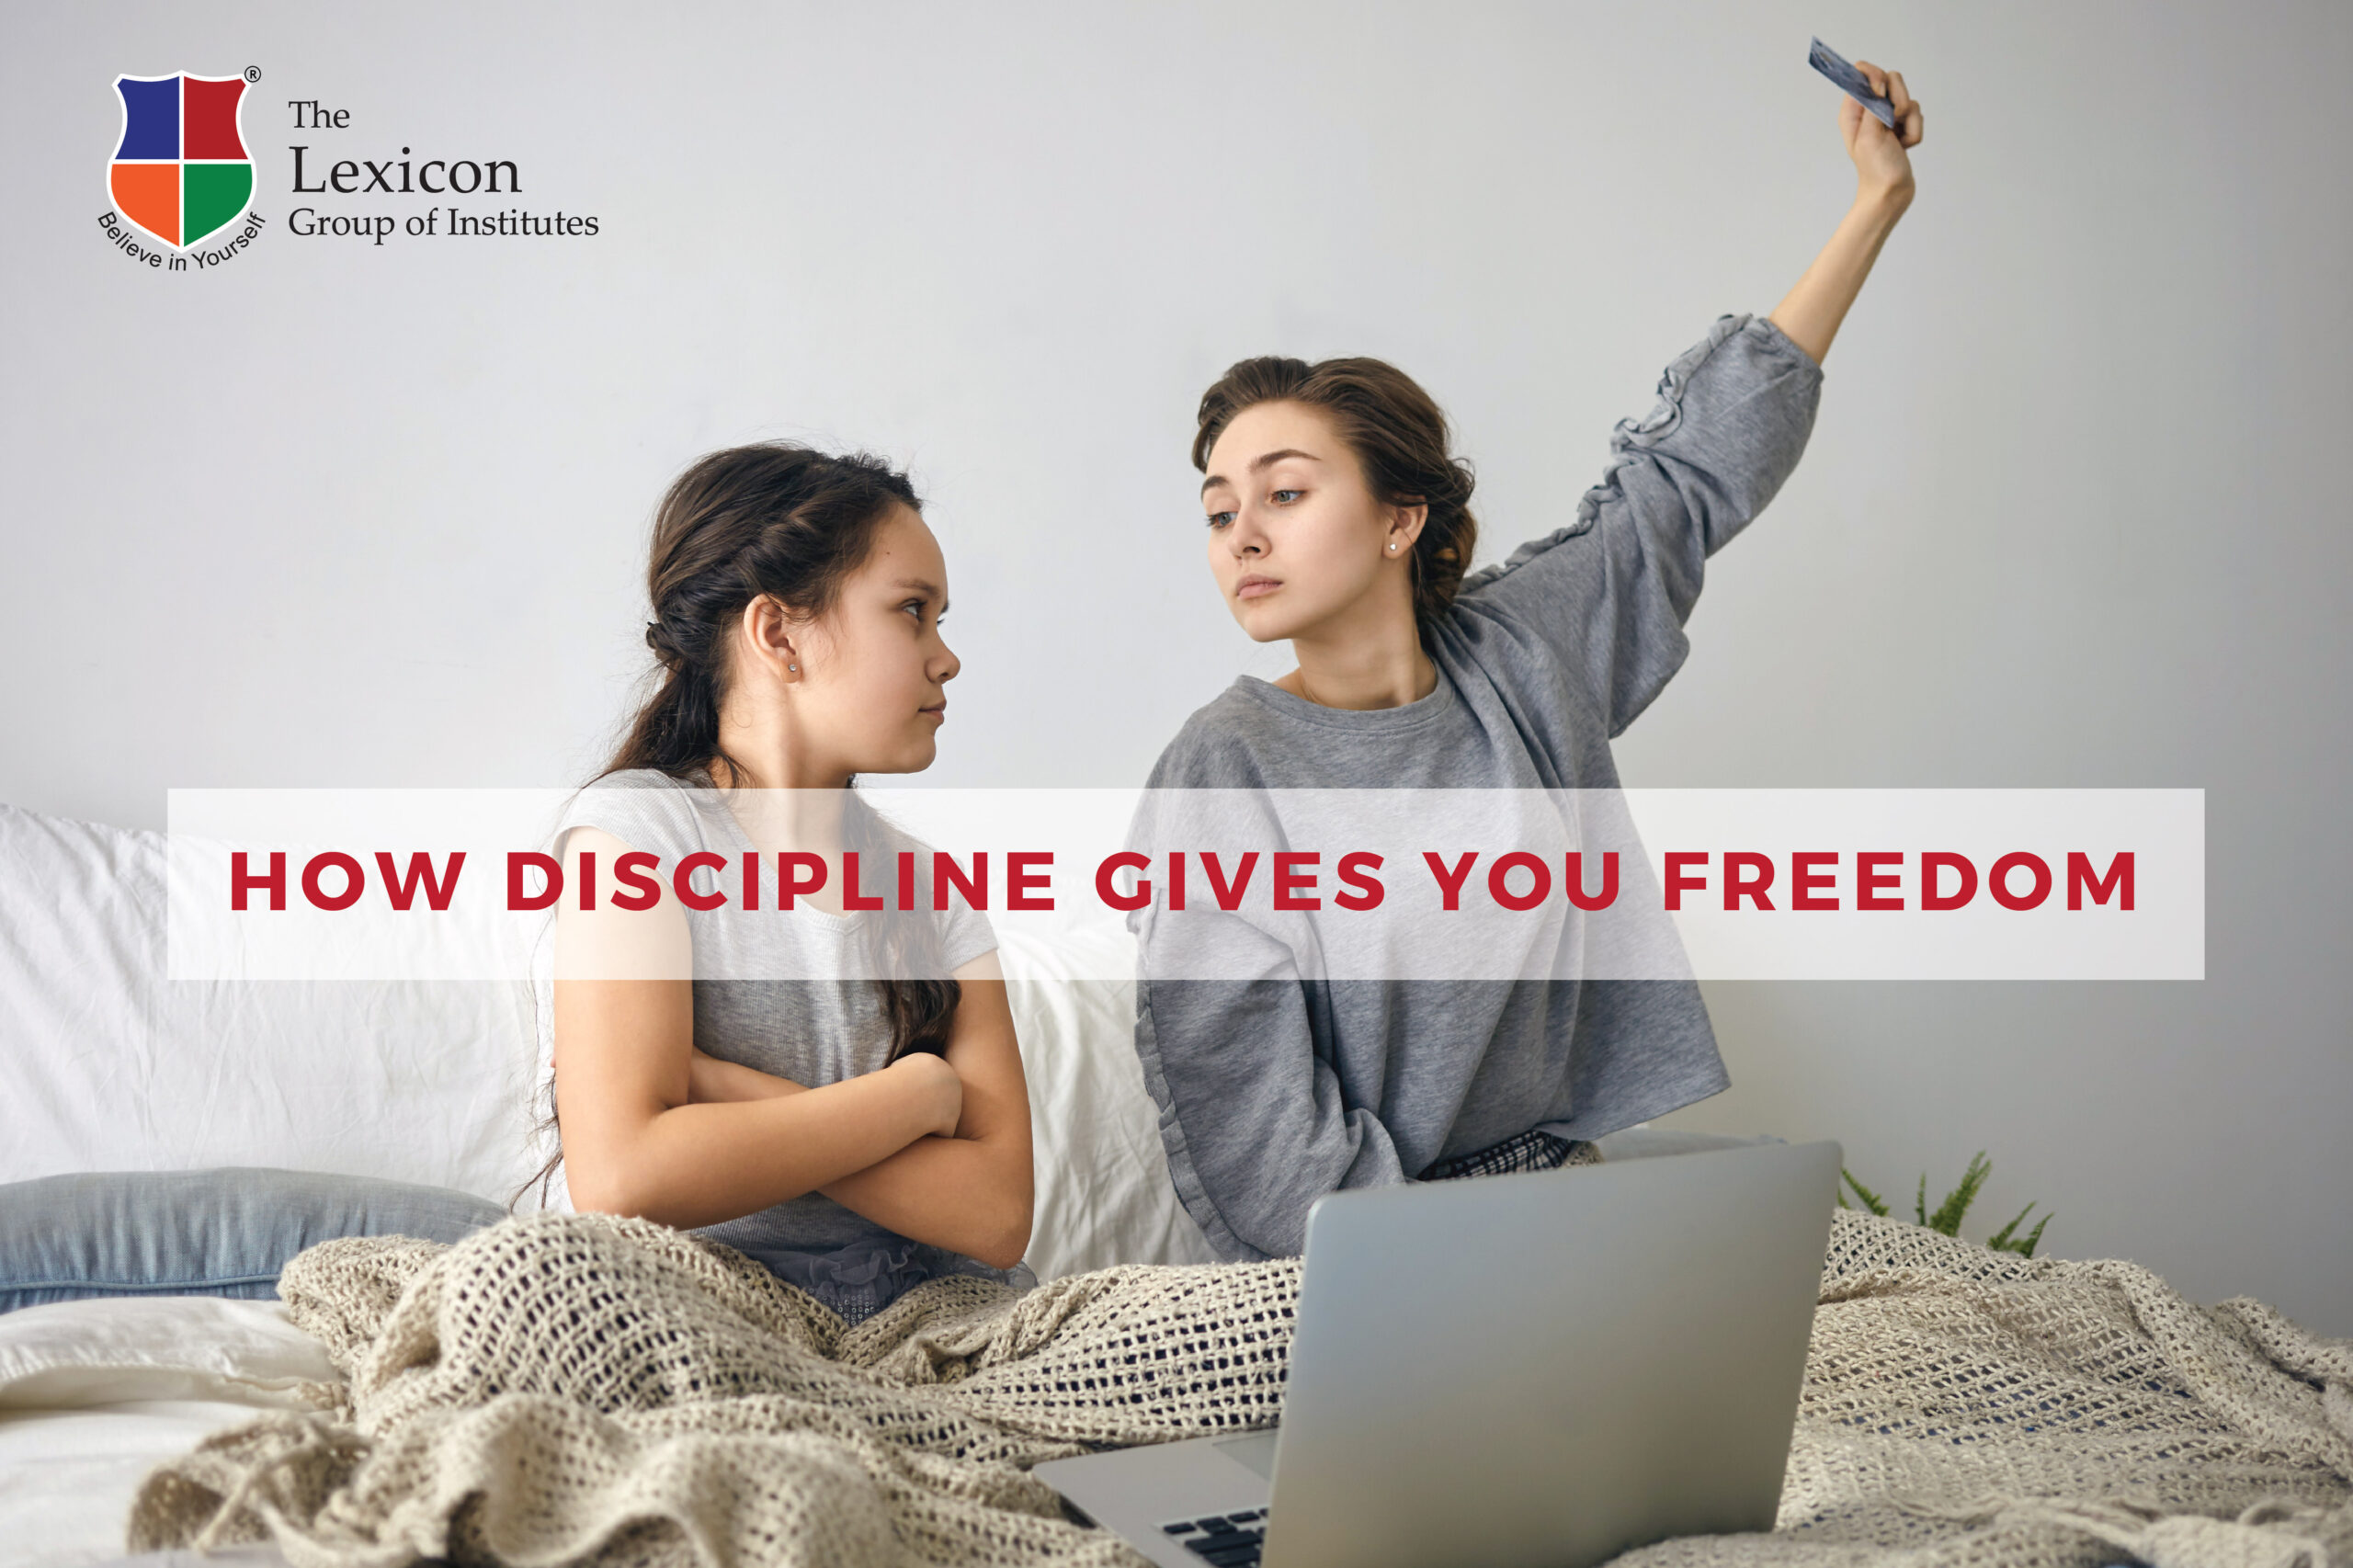 HOW DISCIPLINE GIVES FREEDOM